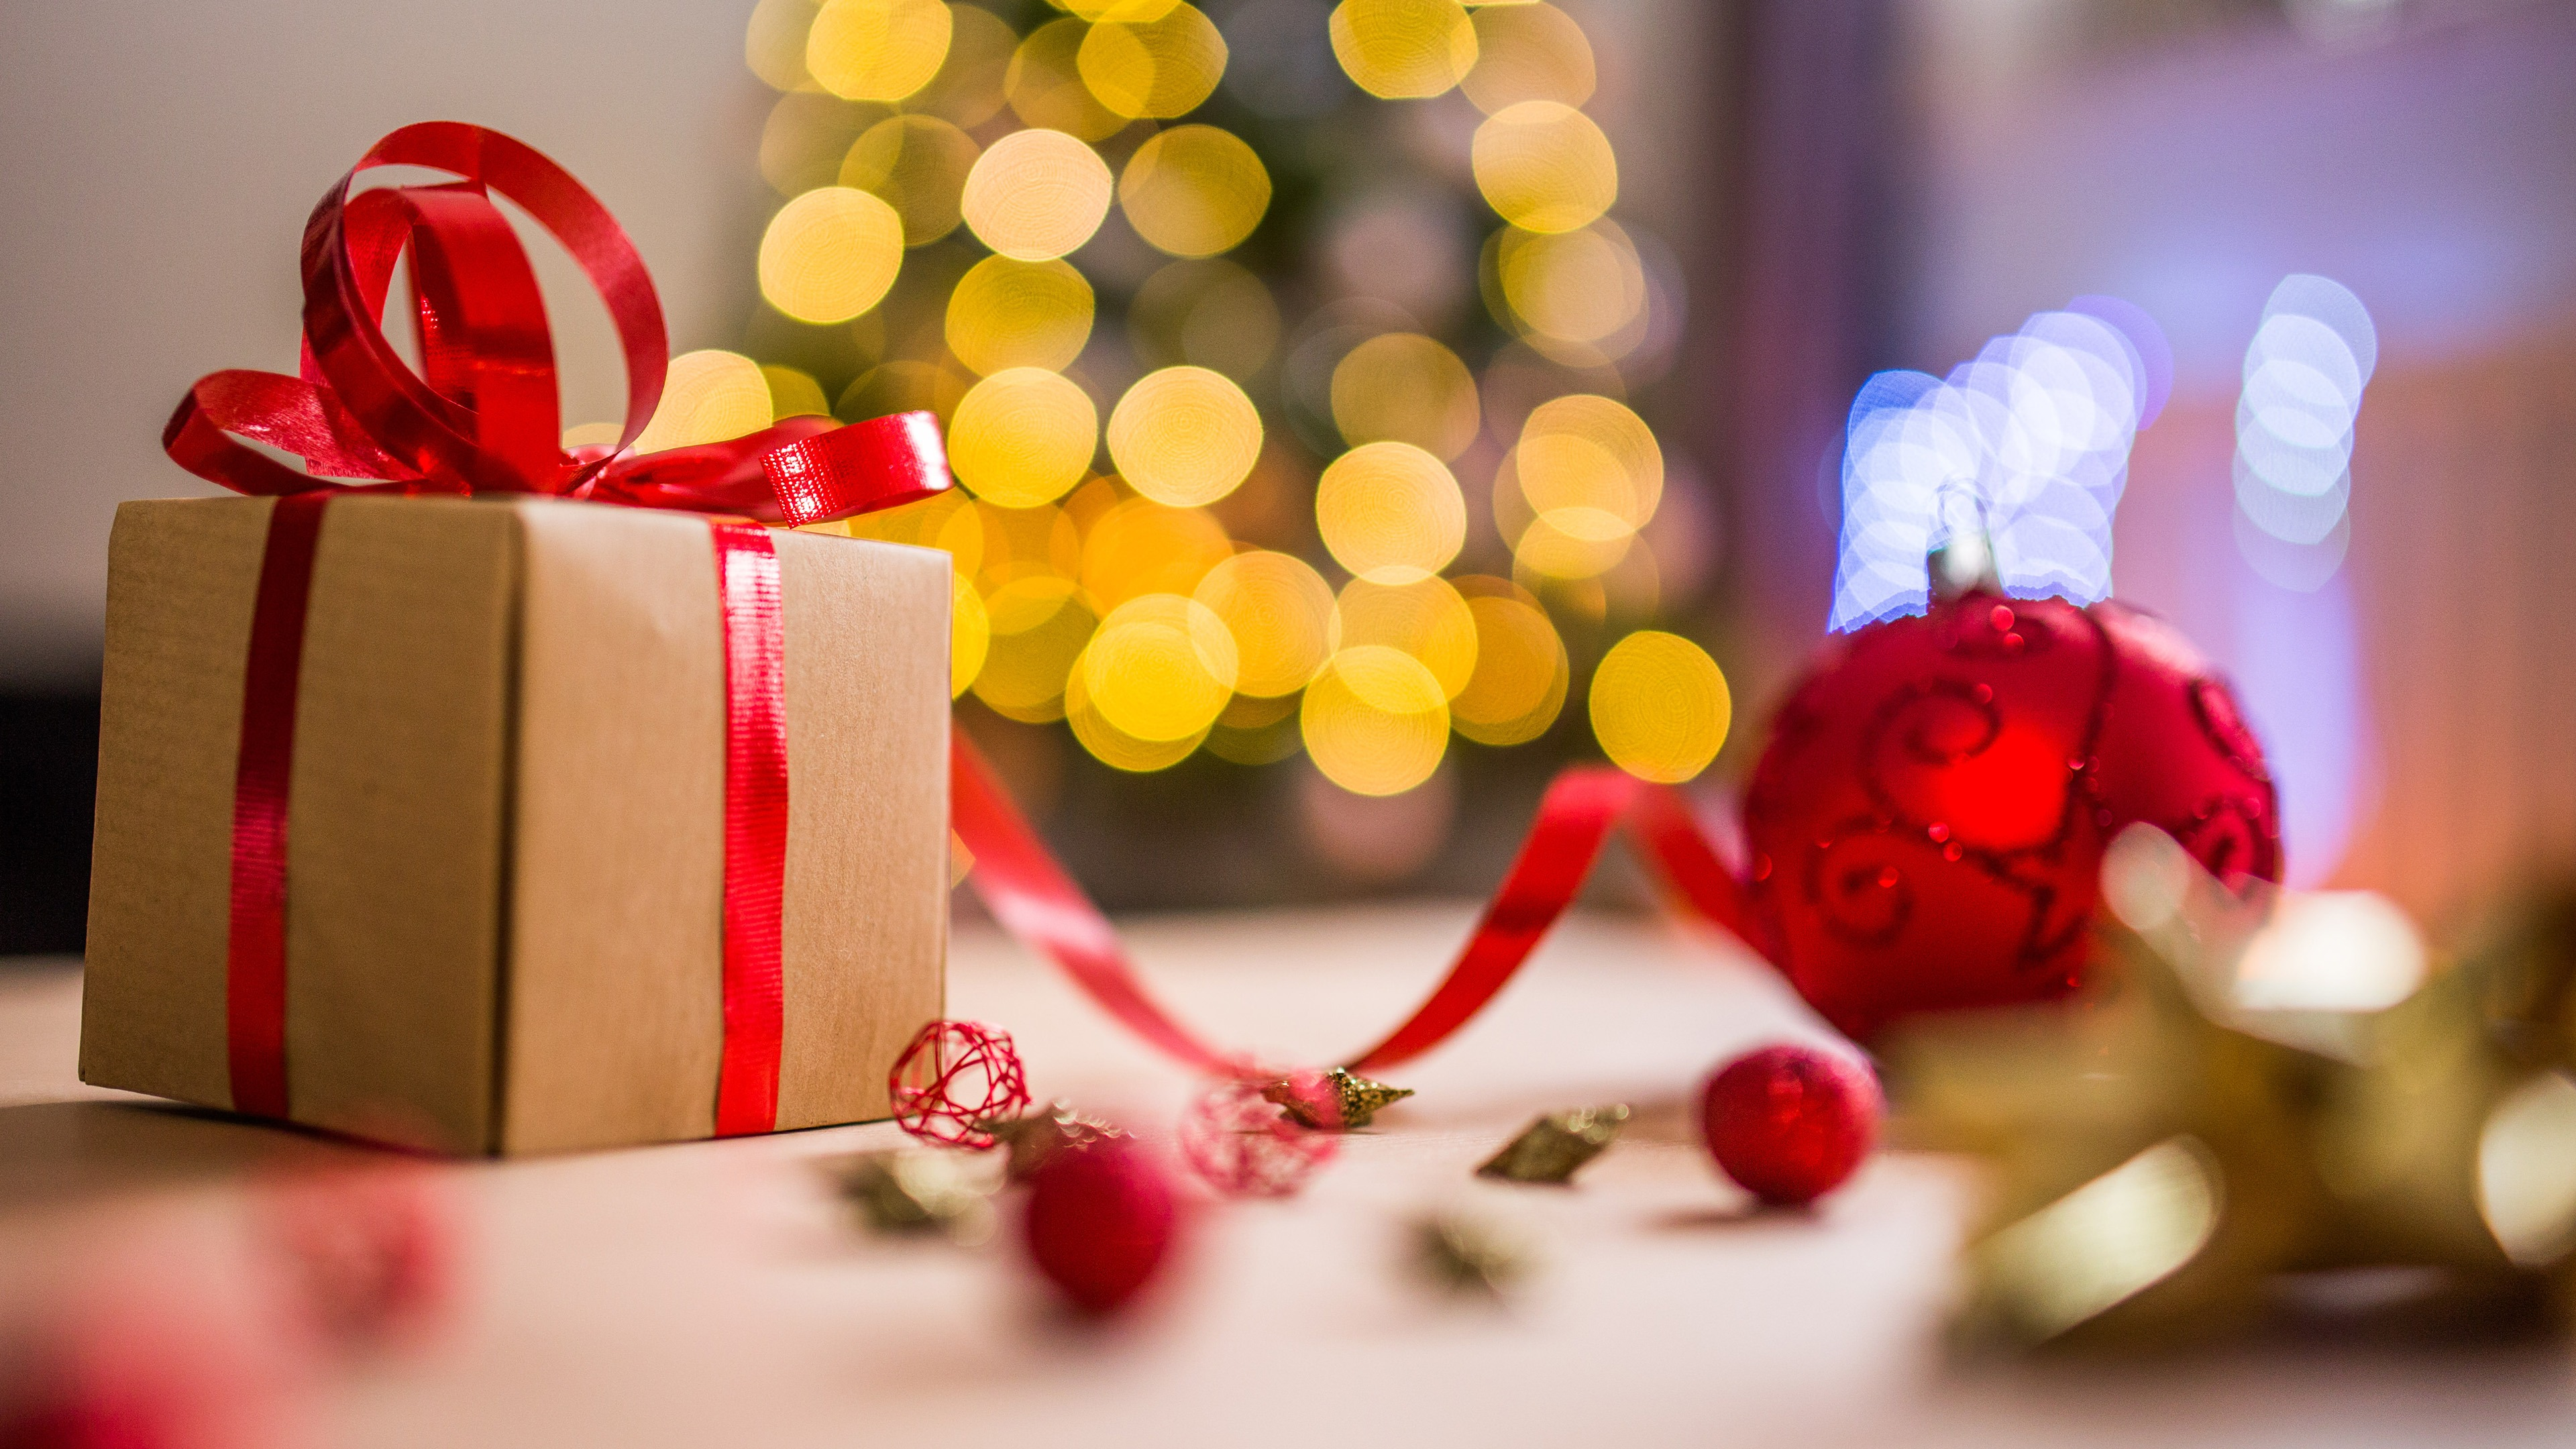 Christmas Gift Decorations Image Background 4k